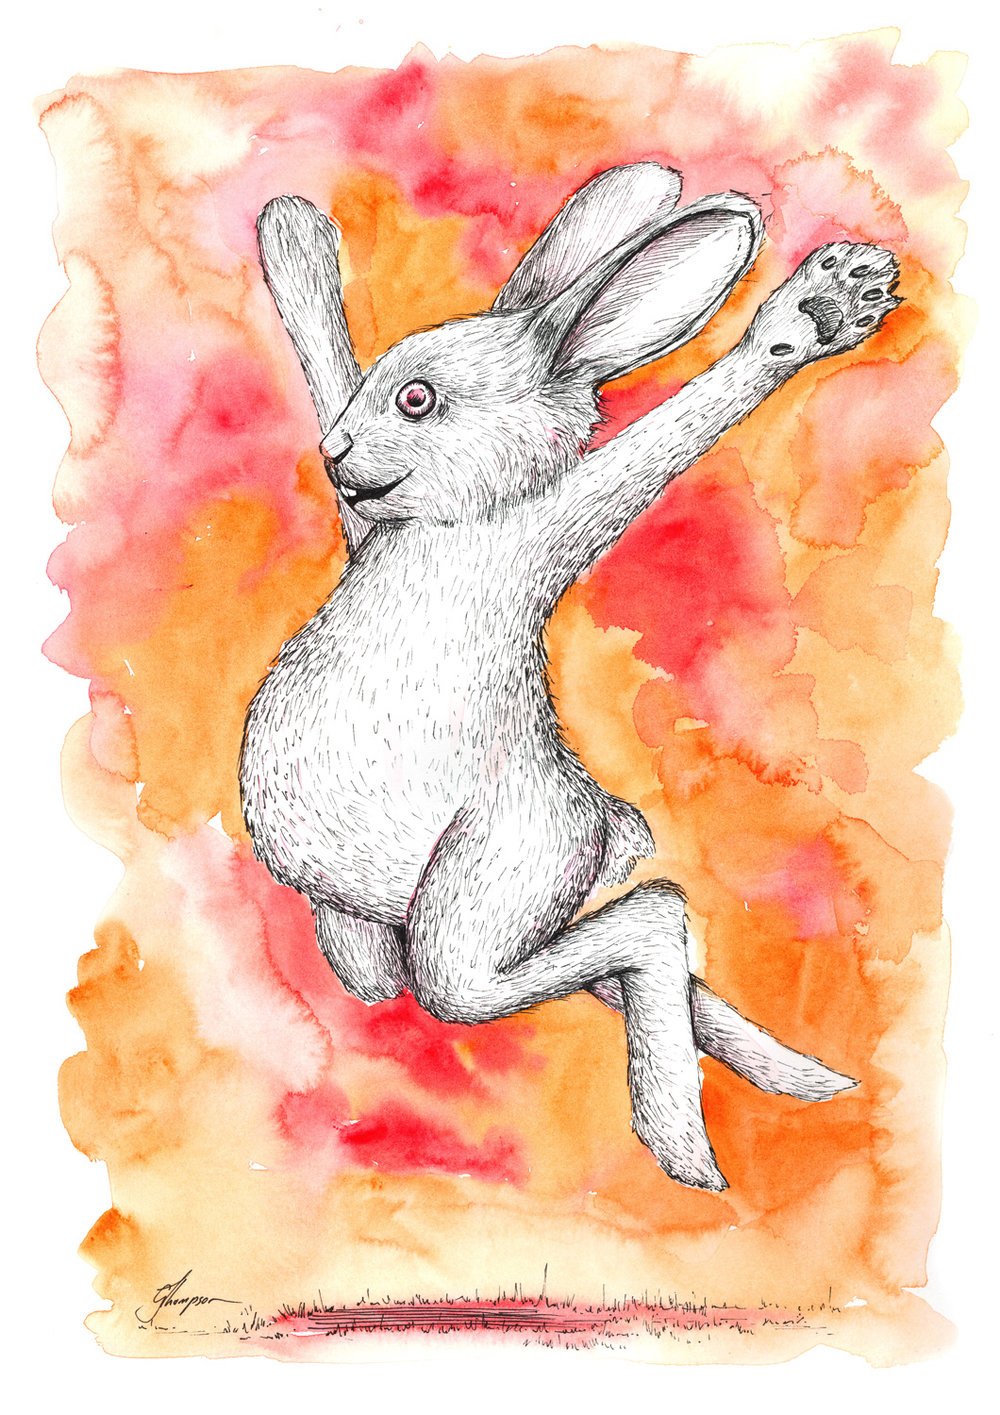 The Leap of Rabbit - SOLD